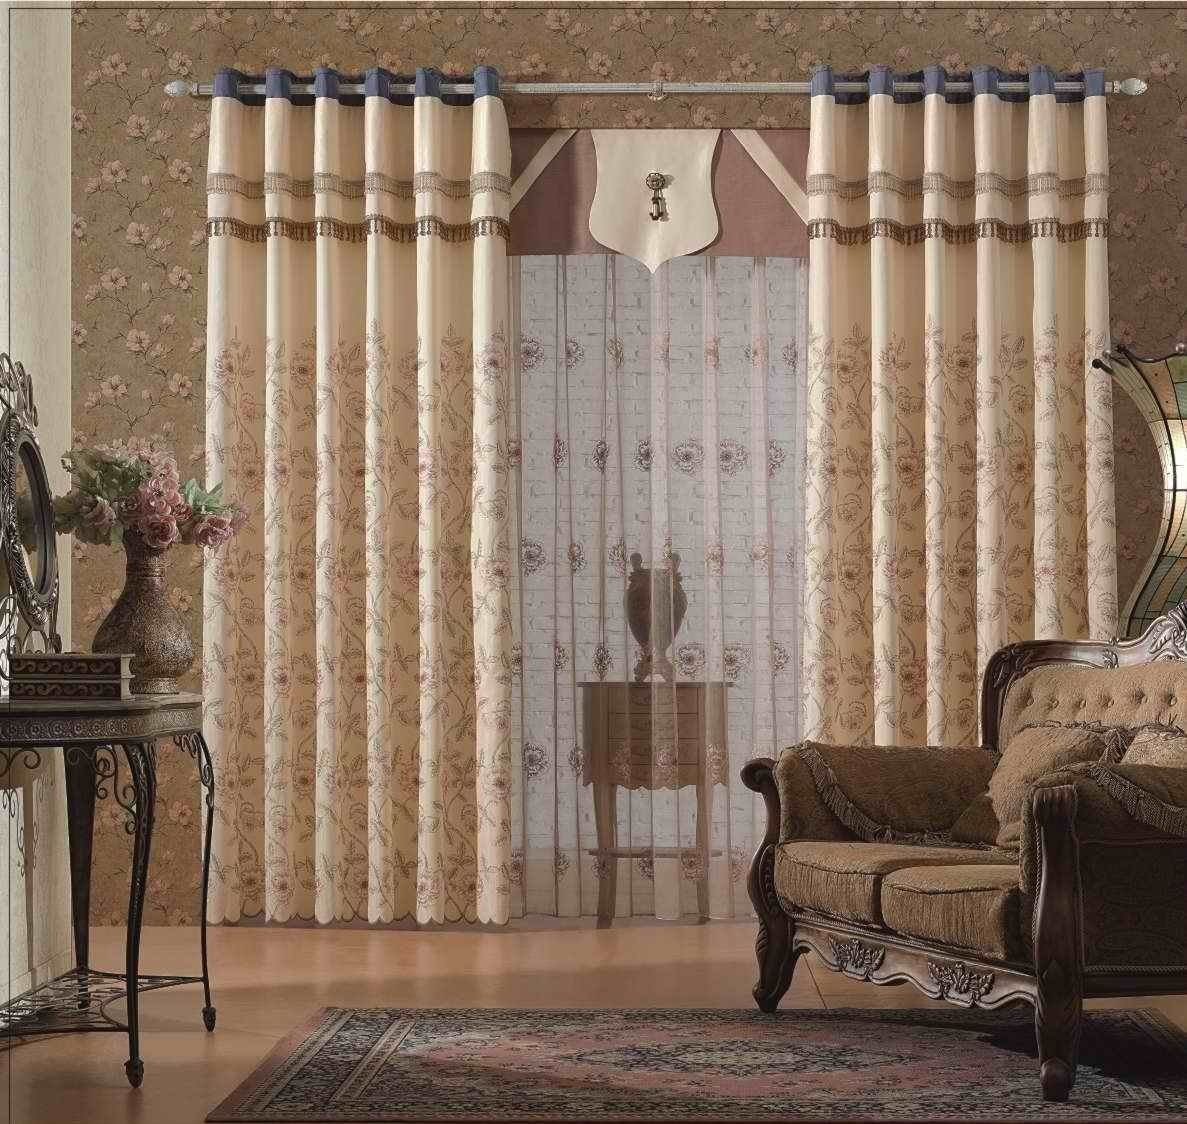 Curtains Ideas For Living Room 2015 | http://club-maraton.com ... for Modern Curtains For Living Room 2015  165jwn